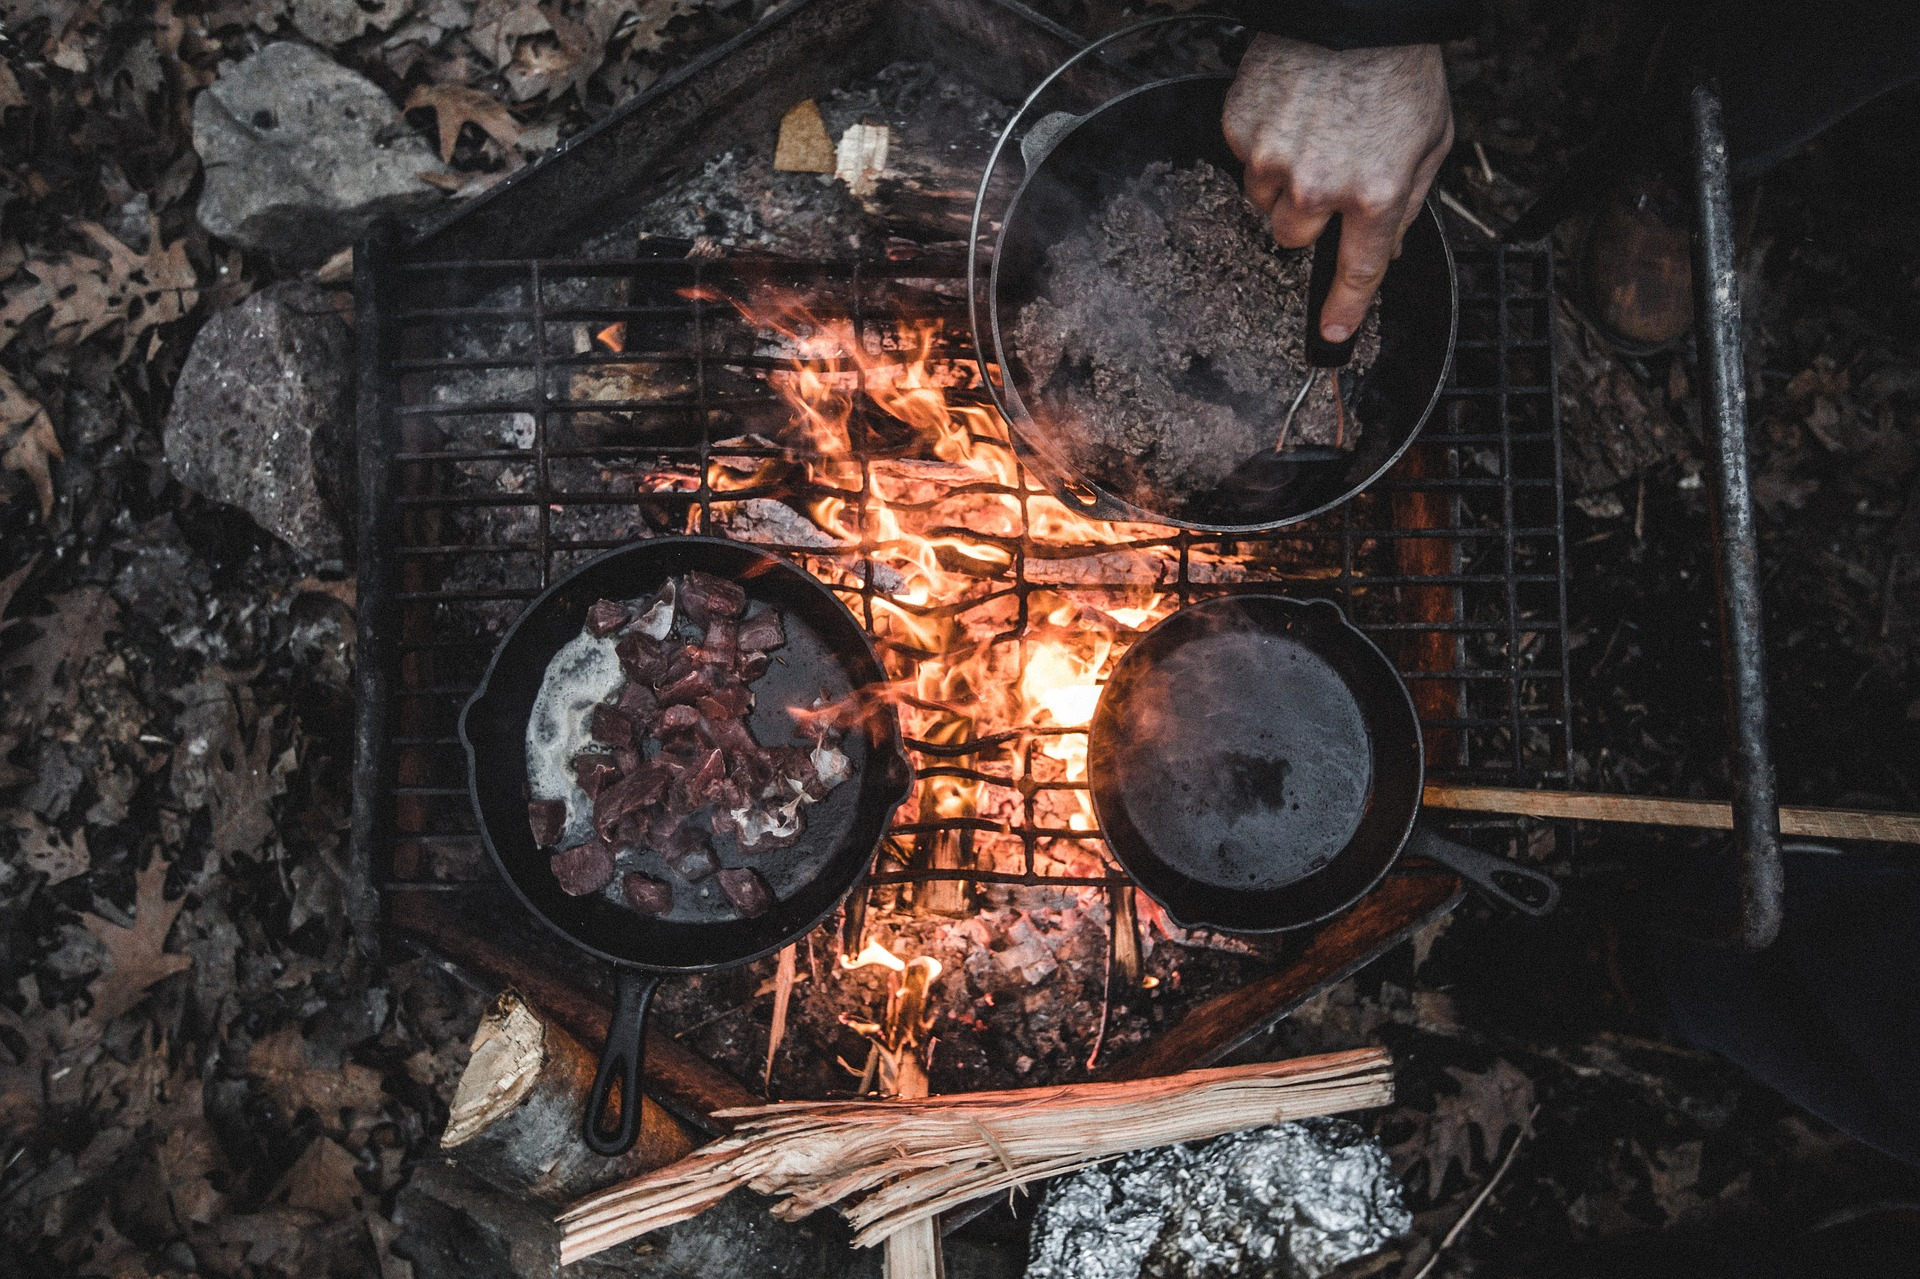 Cooking food in camping trip